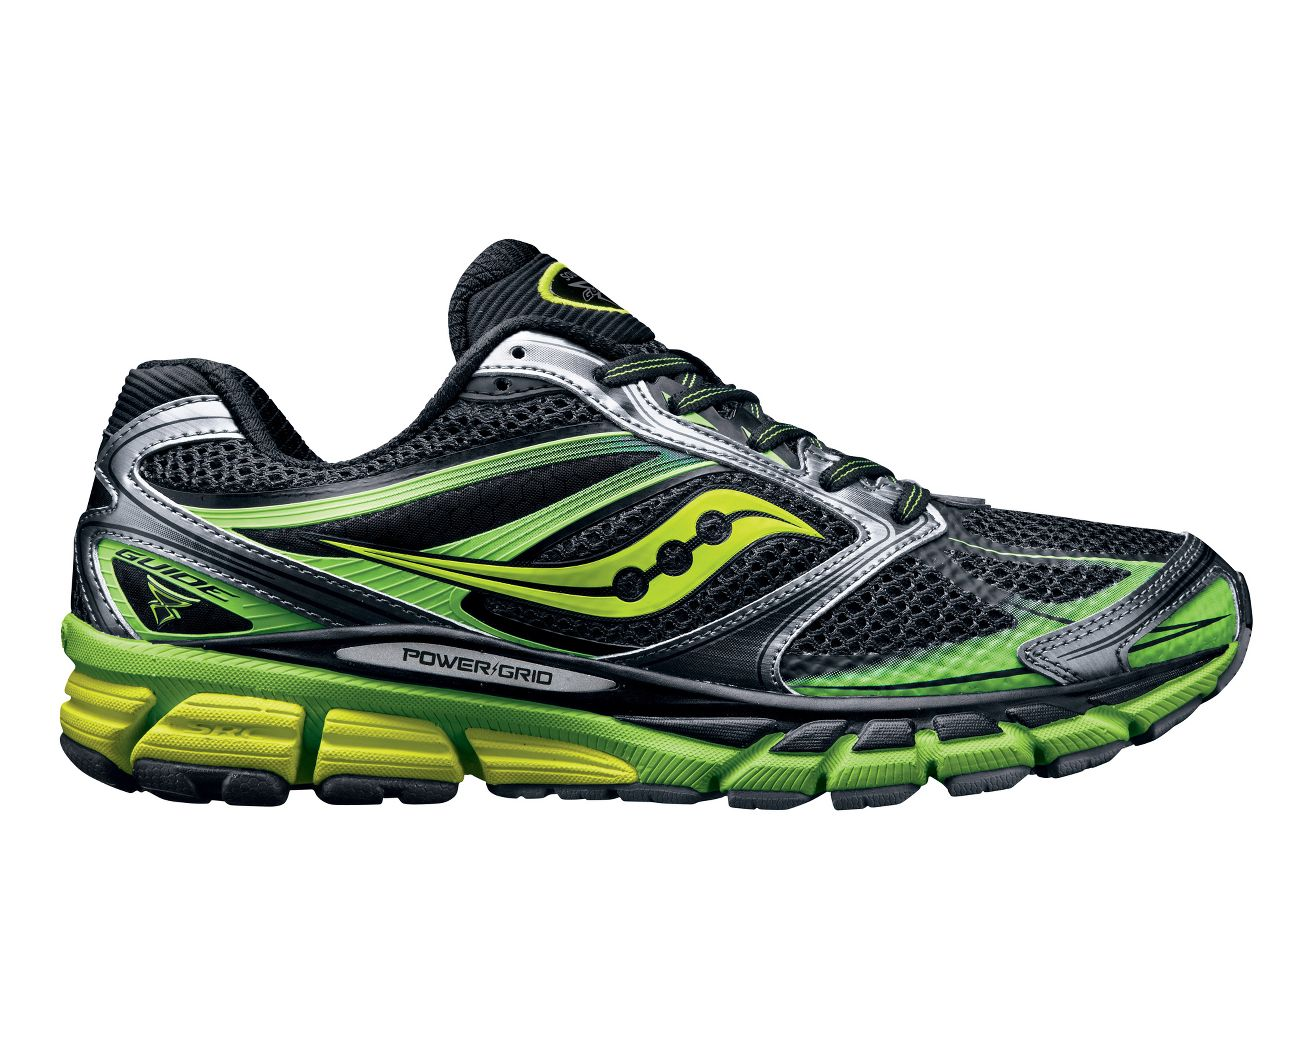 Saucony Powergrid Guide 8